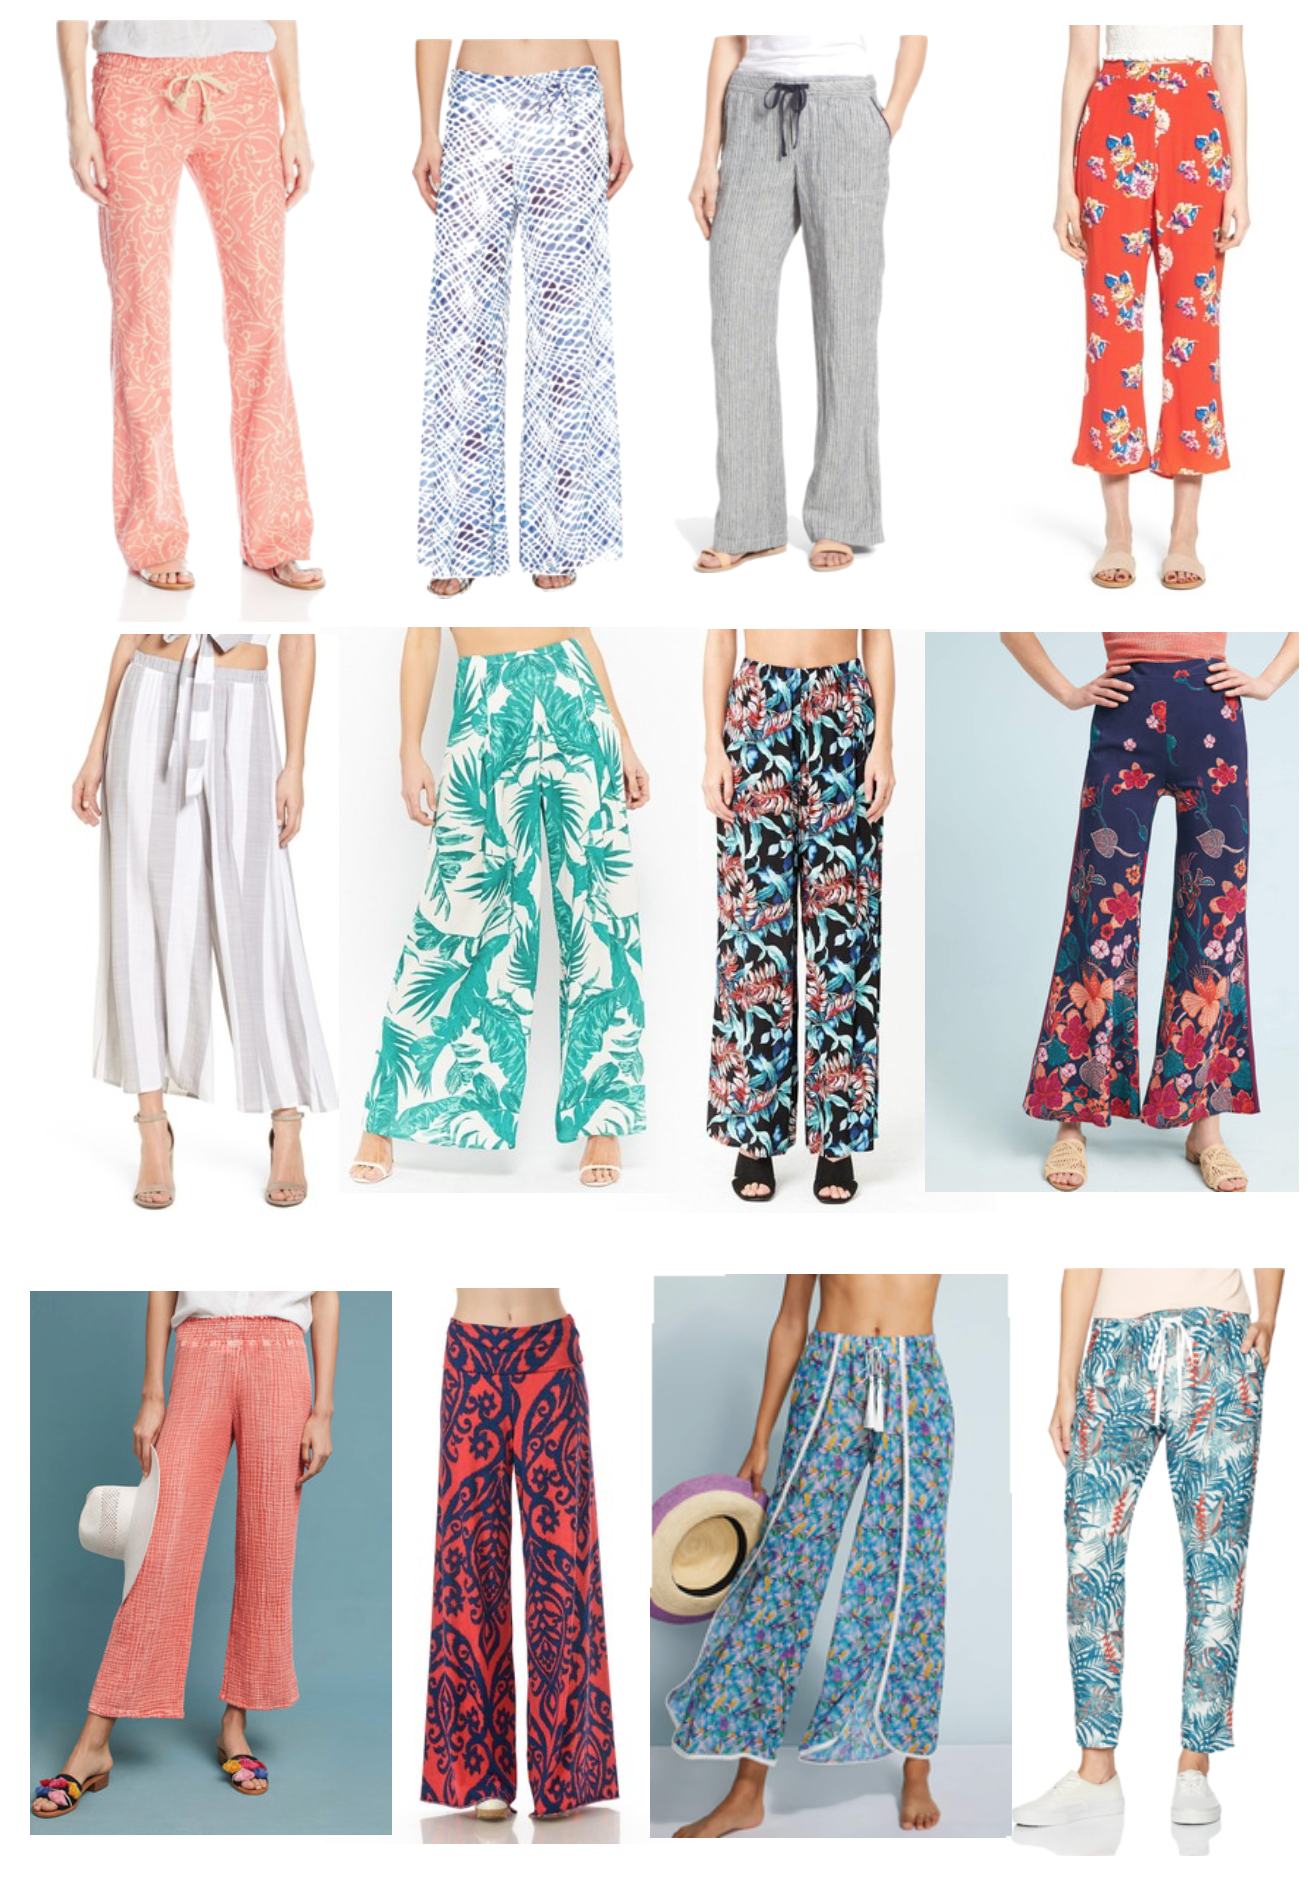 53c2c590657 Loving Lately  Printed Pants Edition - CommuniKait